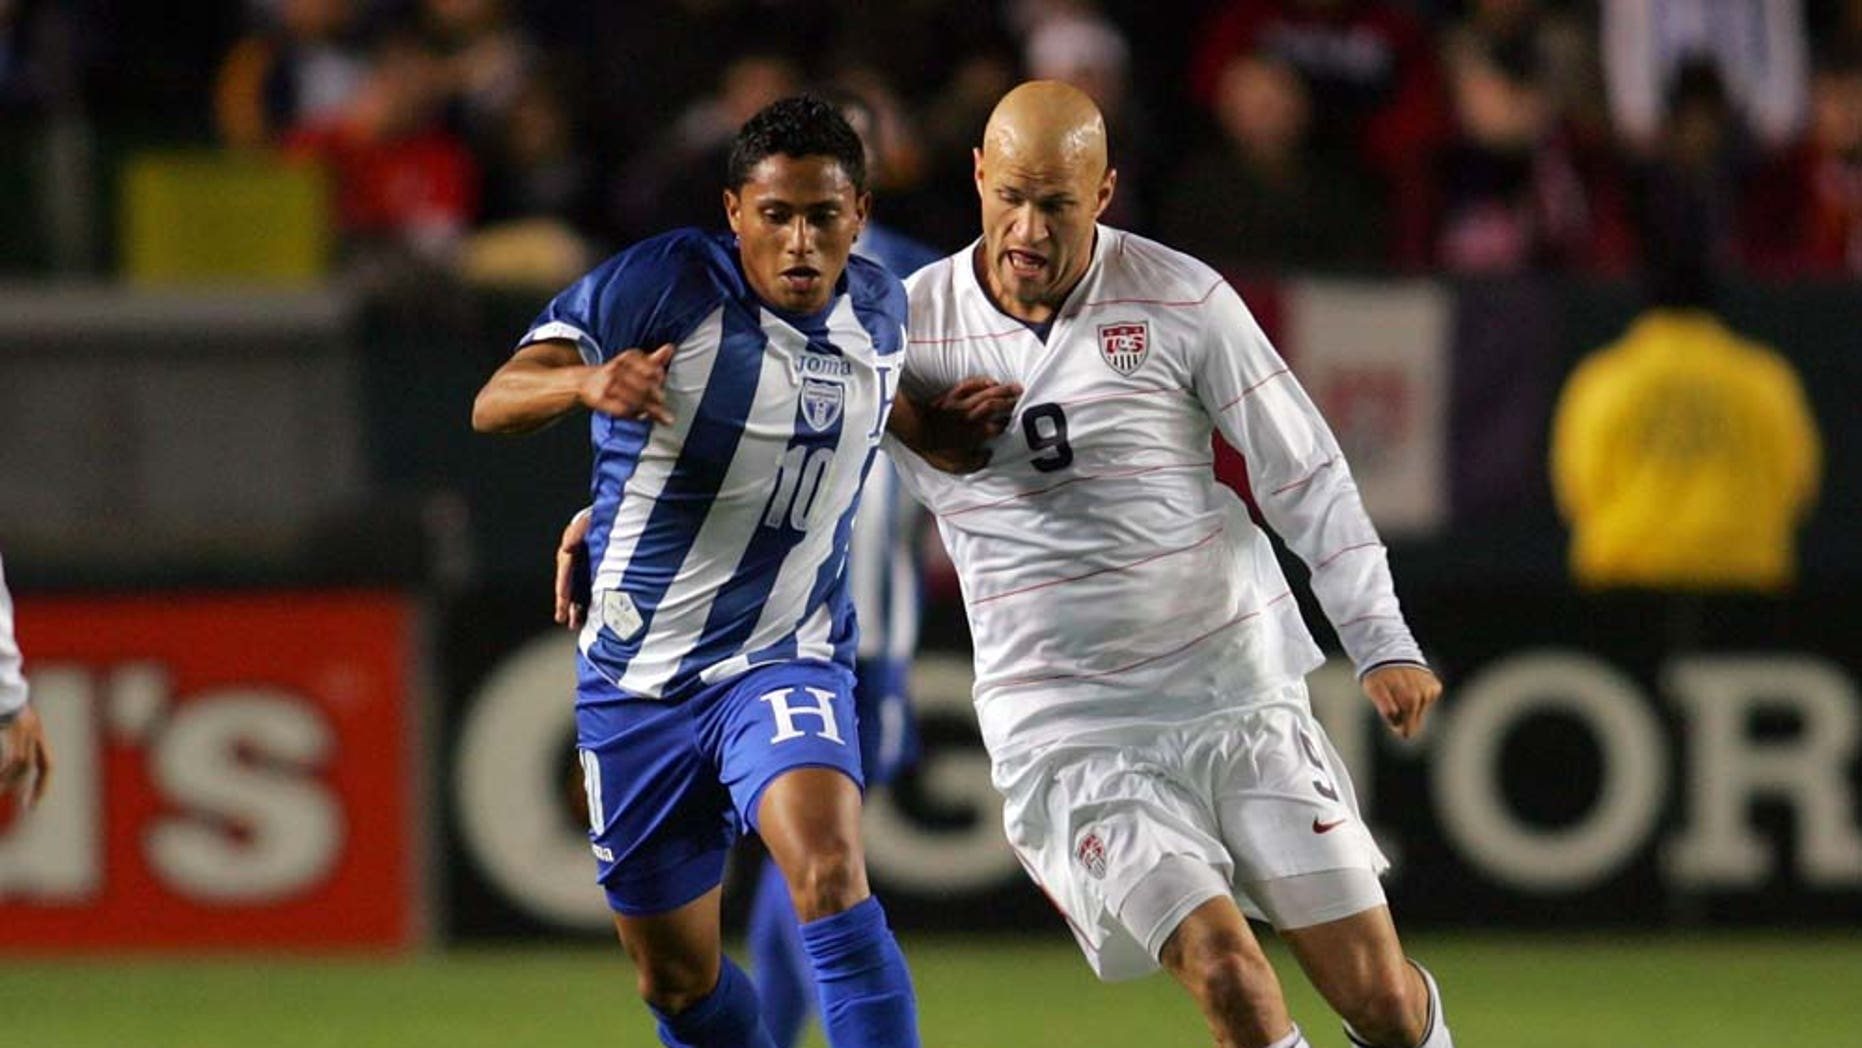 CARSON, CA - JANUARY 23:  Ramon Nunez #10 of Honduras holds off a challenge by Conor Casey #9 of USA during their international friendly match on January 23, 2010 in Carson, California. Honduras defeated USA 3-1.  (Photo by Victor Decolongon/Getty Images)